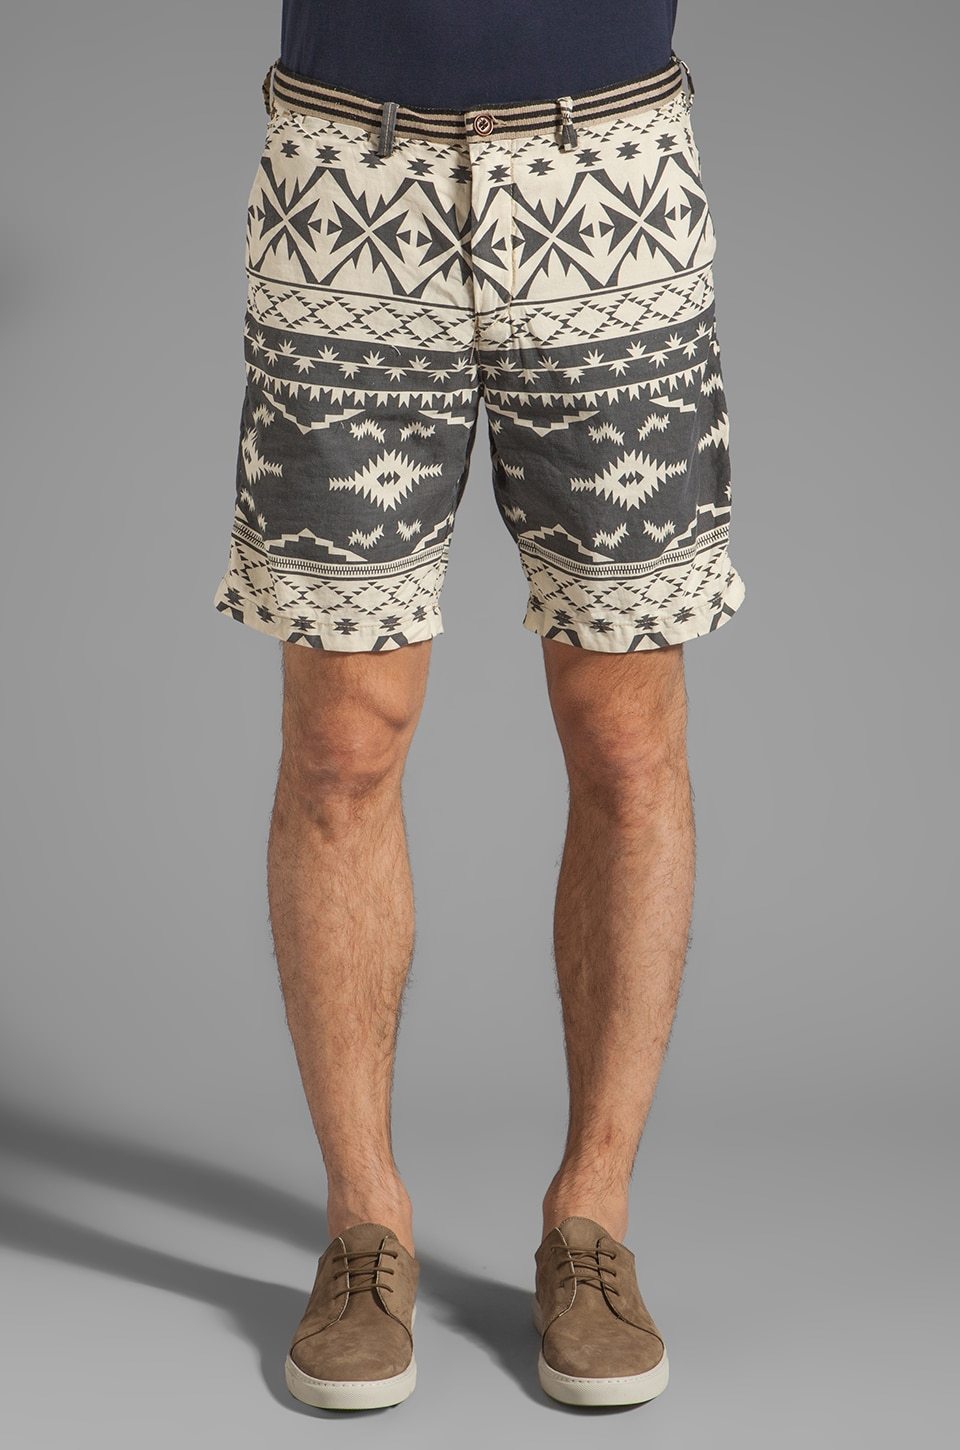 Scotch & Soda Aztec Print Short in Black/White